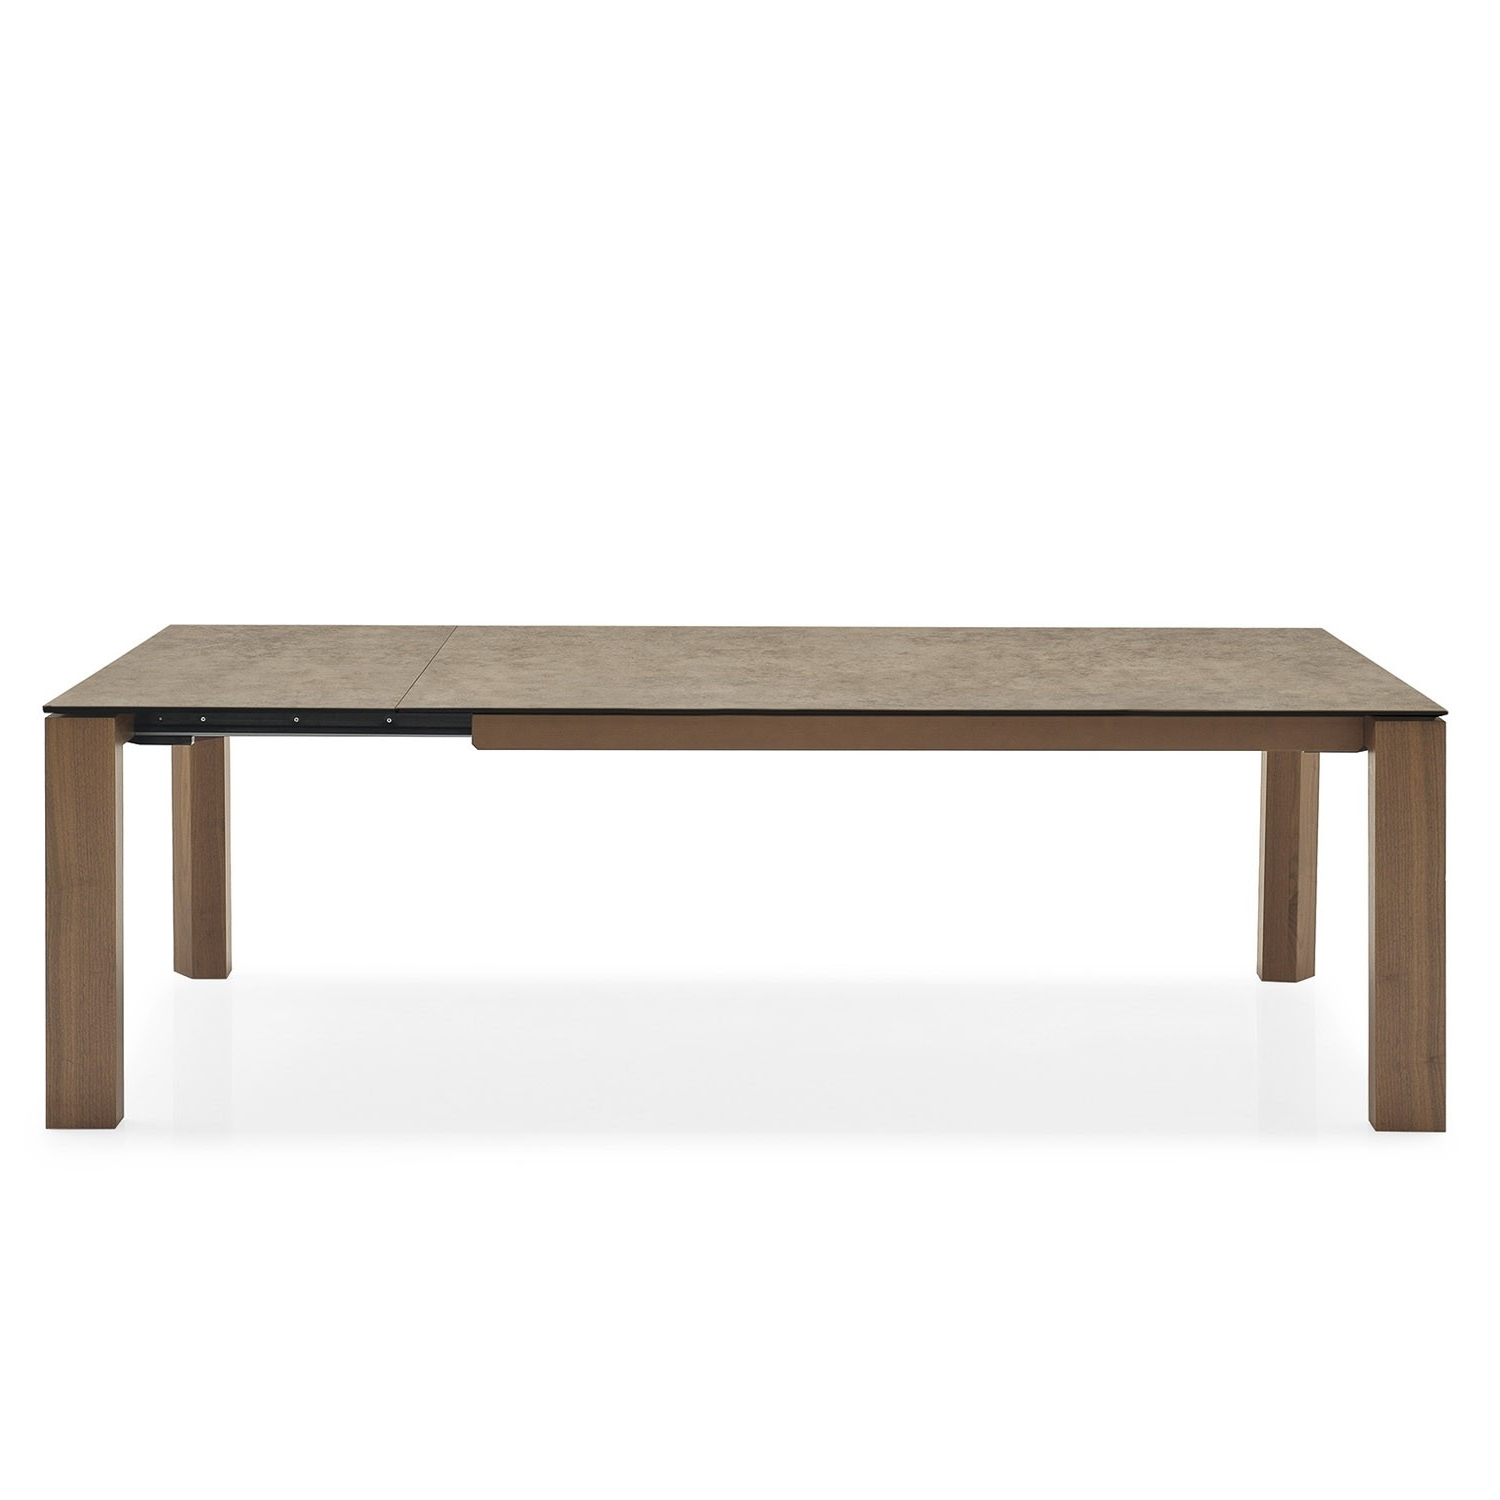 Calligaris Omnia Glass Extending Dining Table – Furnatical Within Widely Used Extending Outdoor Dining Tables (View 9 of 25)